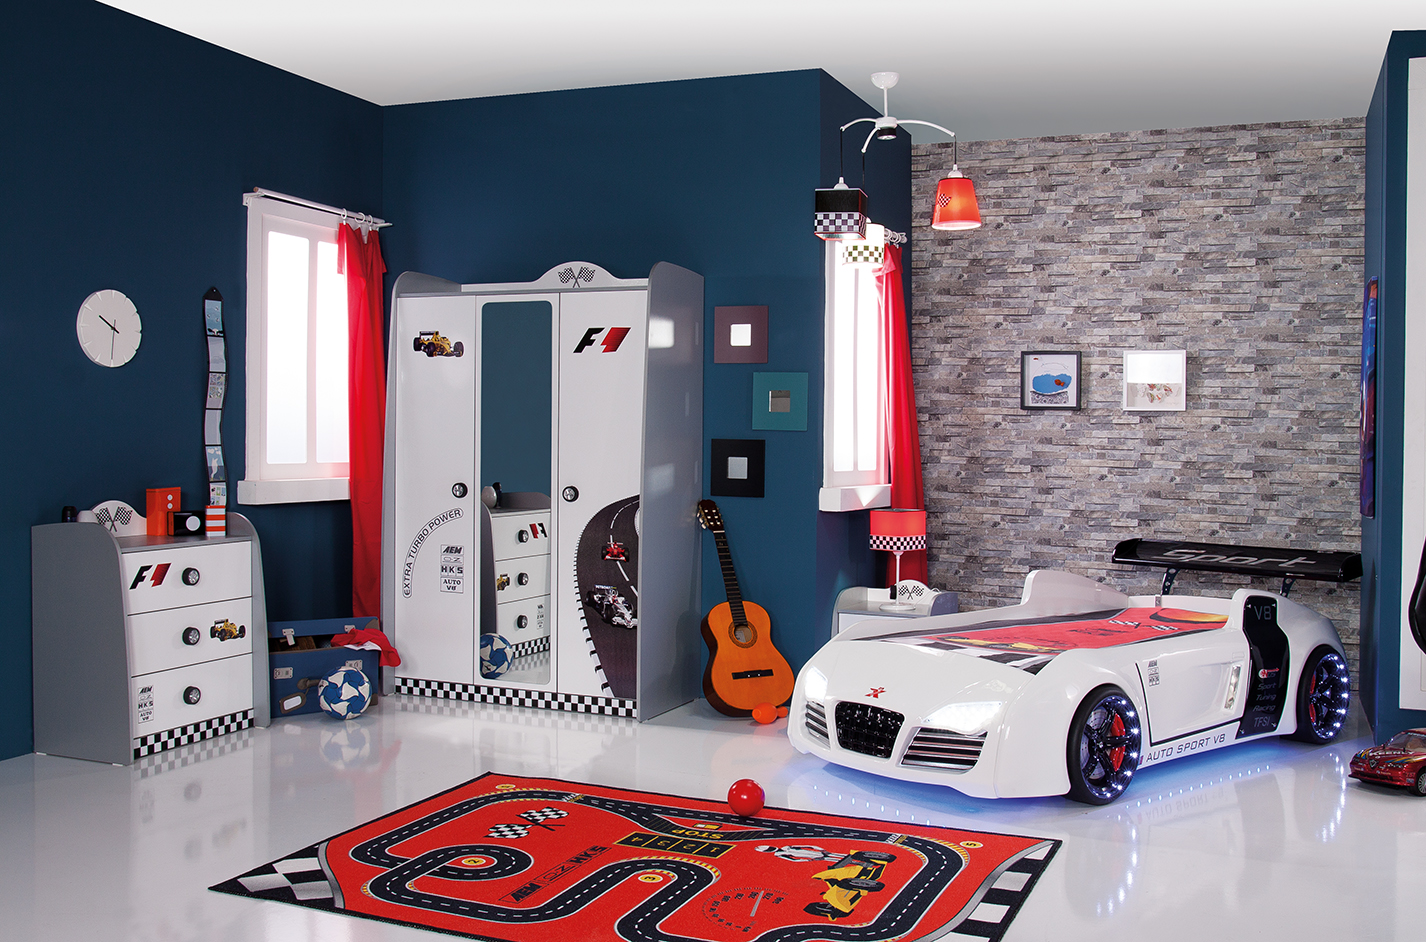 v power kinderkamer jongenskamer wit kinderkamer kinderbed terrashaard en barbecues. Black Bedroom Furniture Sets. Home Design Ideas